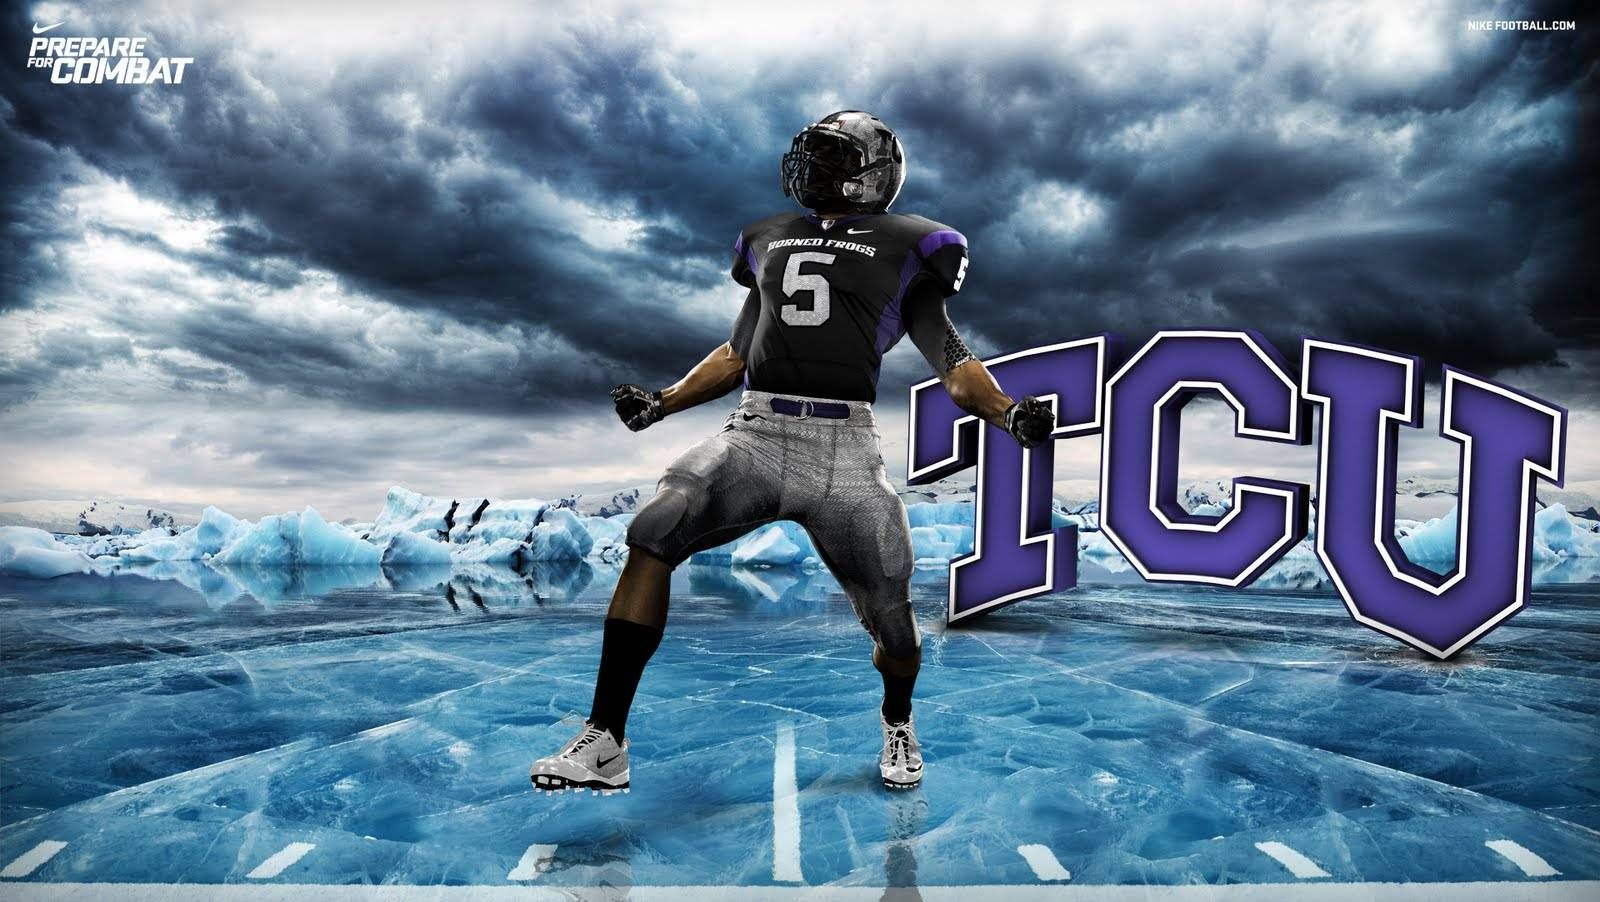 College Football 2013 Nike College Football Wallpaper 60697 Football Hd Wallpaper Tcu Football Tcu Horned Frogs